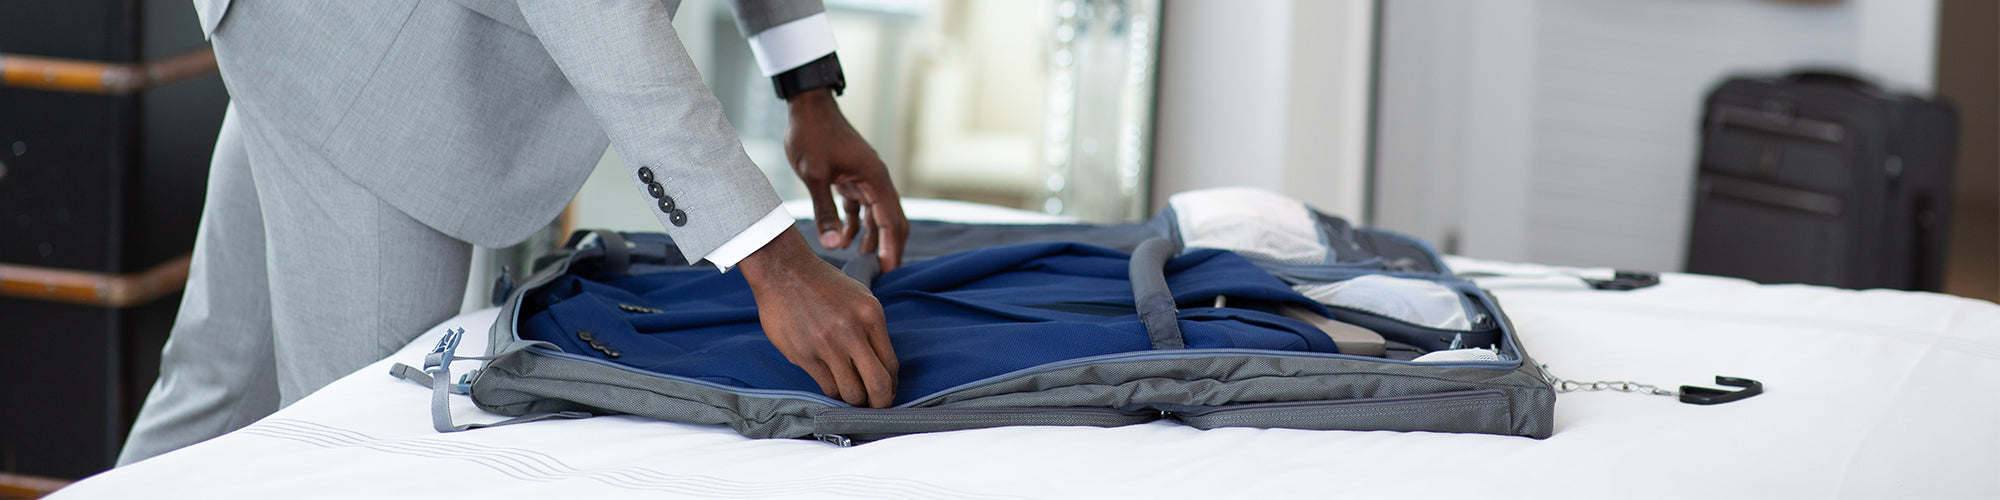 Garment Bag opened with suiter